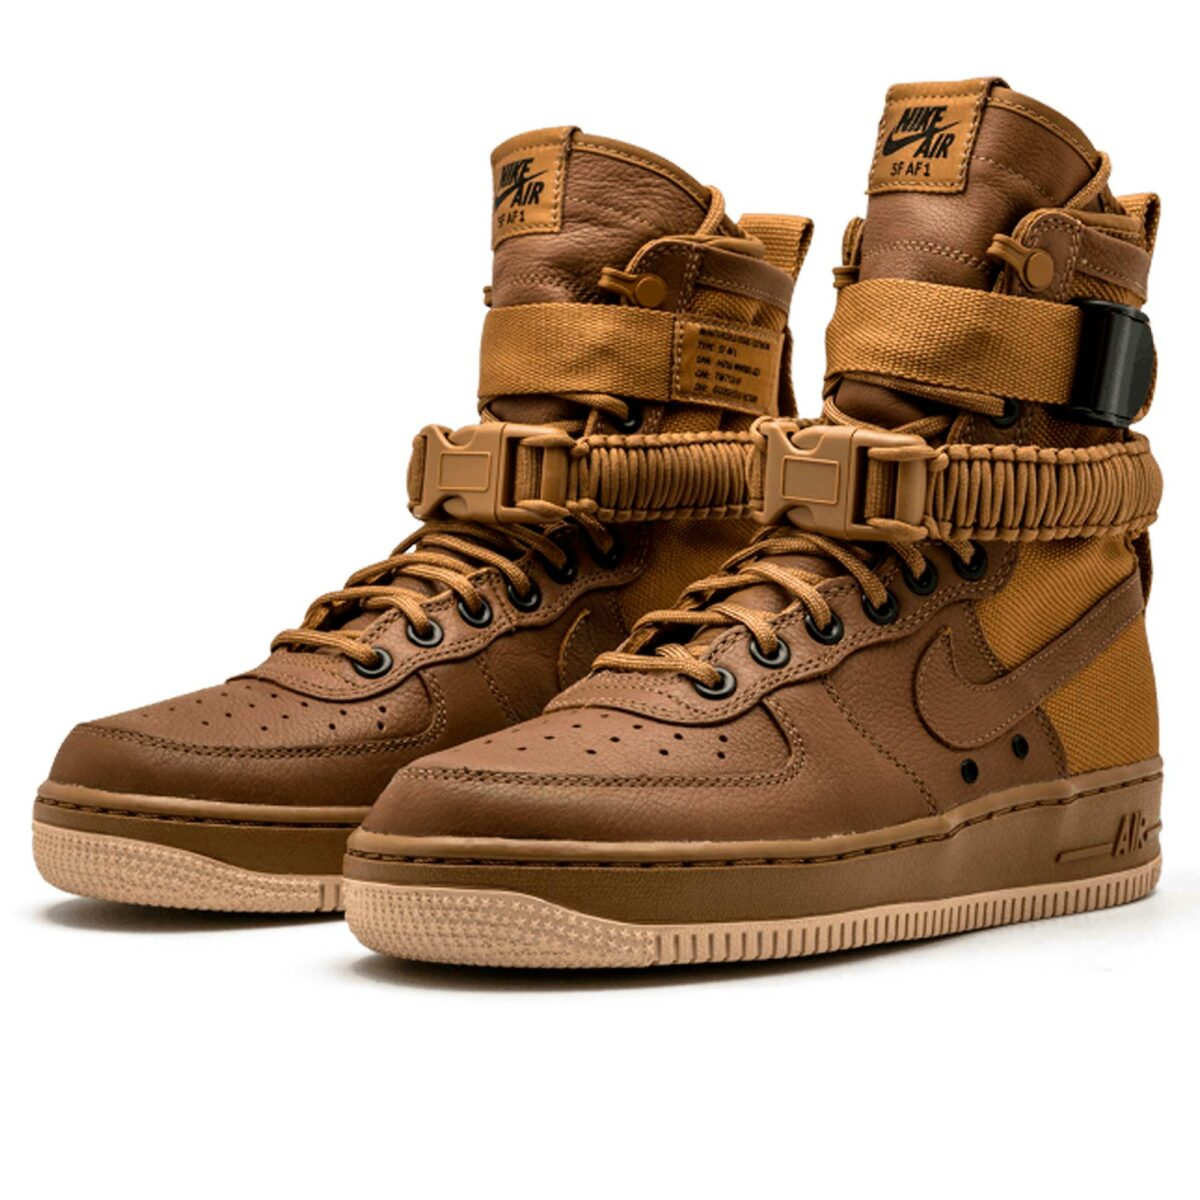 nike sf air force 1 golden beige 857872-200 купить